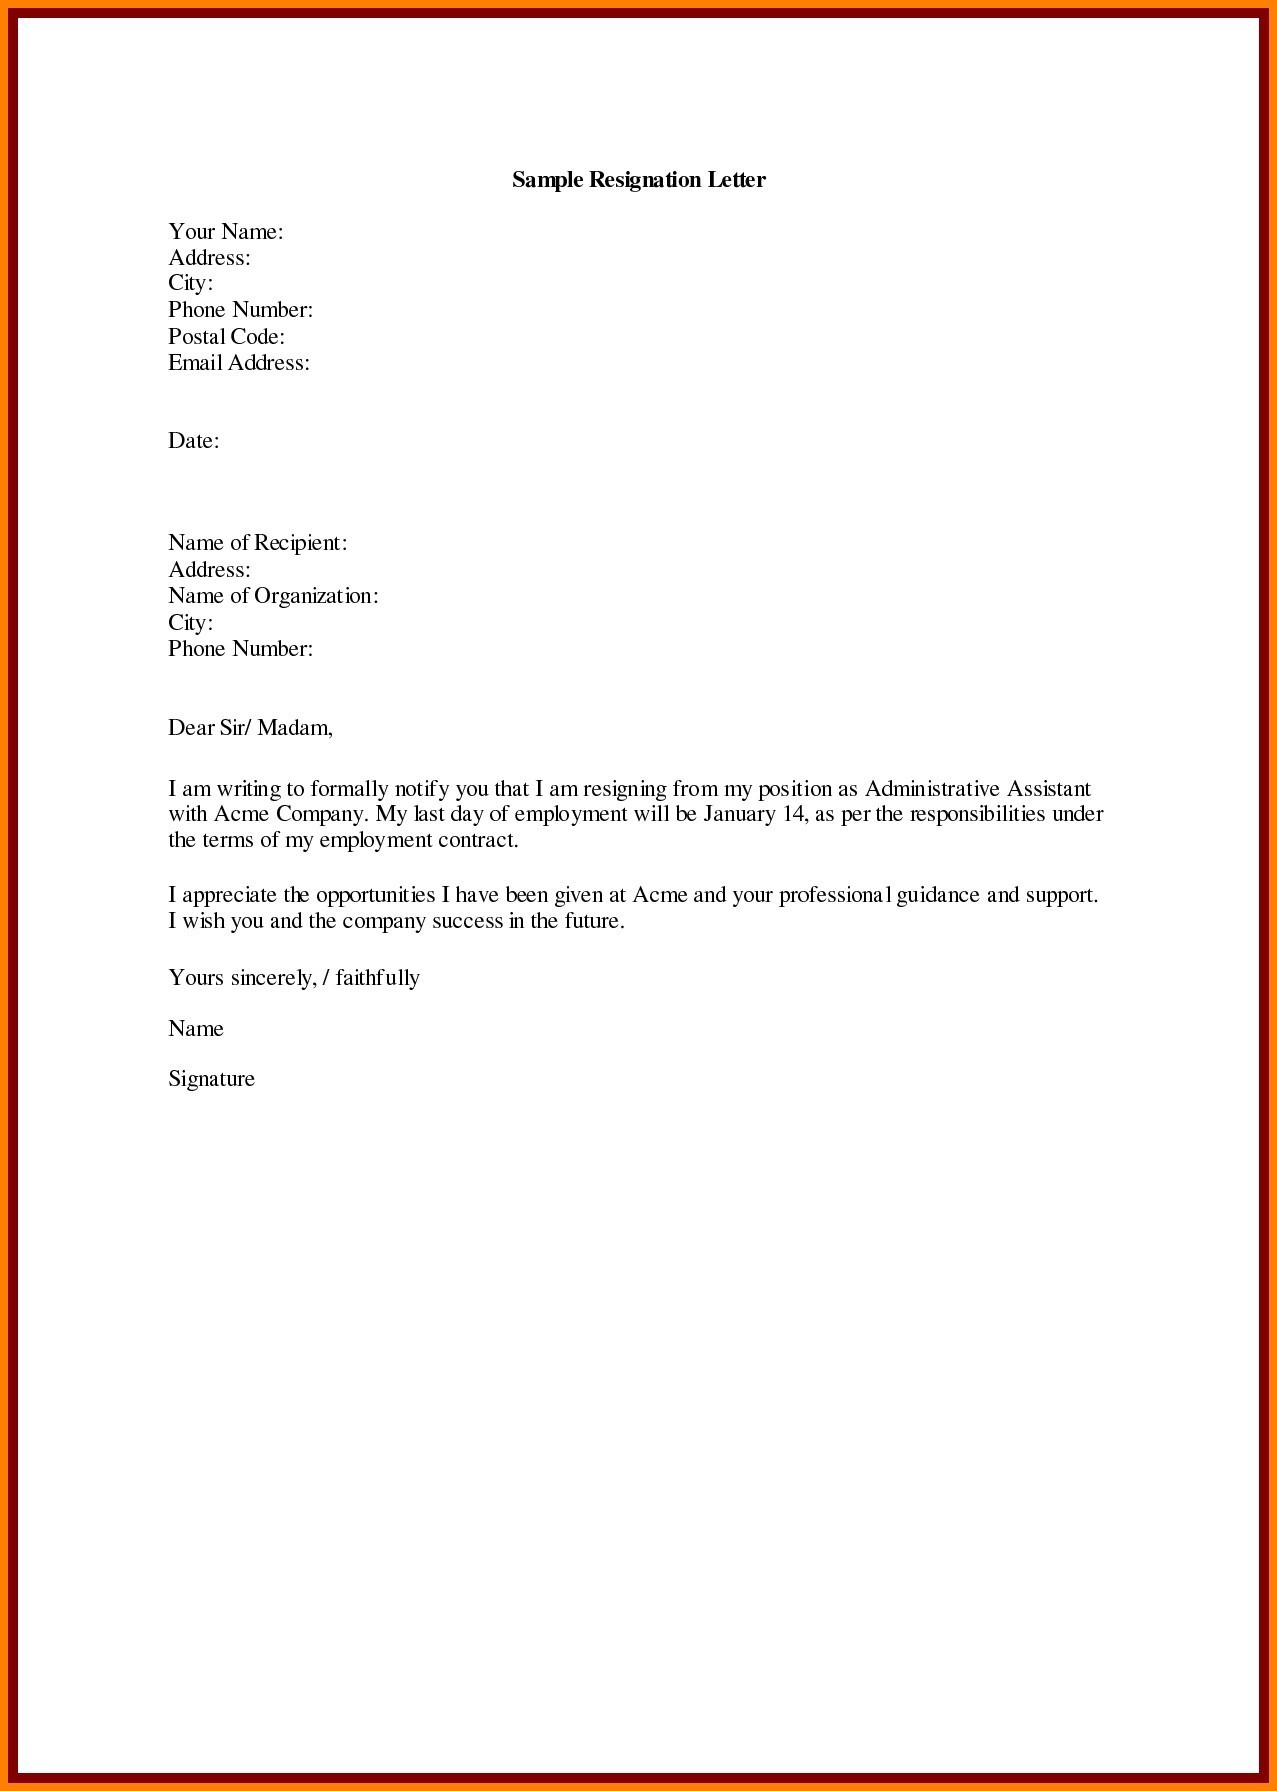 immediate resignation letter template example-Sample Resignation Letter Template Doc Copy Samples Resignation Letters for Personal Reasons Save Sample Resignation 17-p